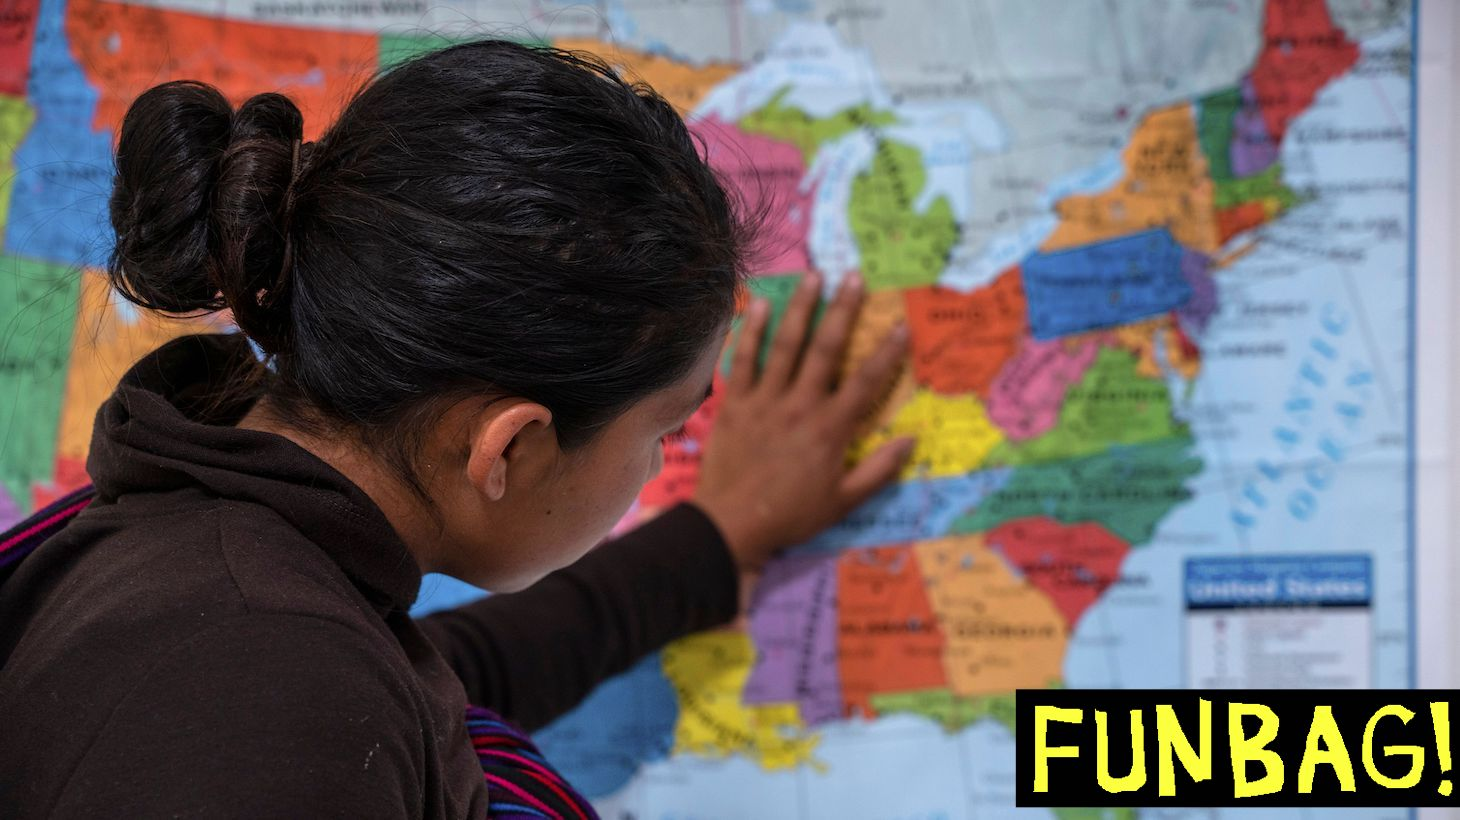 """A Guatemalan woman touches a map of the United States at the Casa del Refugiado, or The House of Refugee, a new centre opened by the Annunciation House to help the large flow of migrants being released by the United States Border Patrol and Immigration and Customs Enforcement in El Paso, Texas on April 24, 2019. - The 125,000 foot space will accomodate about 500 migrants, with plans to expand for up to 1,500. While this is larger then other centres in the El Paso area, Father Ruben Garcia the director of Annunciation house says that they will still rely on churches around the community for help housing migrants. According to the CBP, border patrol agents apprehended 92,607 people along the southwest border in March, up from 66,884 in February. US President Donald Trump, who has made immigration the core of his message to his conservative base, said on Twitter that """"a very big Caravan of over 20,000 people"""" is making its way through Mexico toward the United States. (Photo by Paul Ratje / AFP) (Photo credit should read PAUL RATJE/AFP via Getty Images)"""